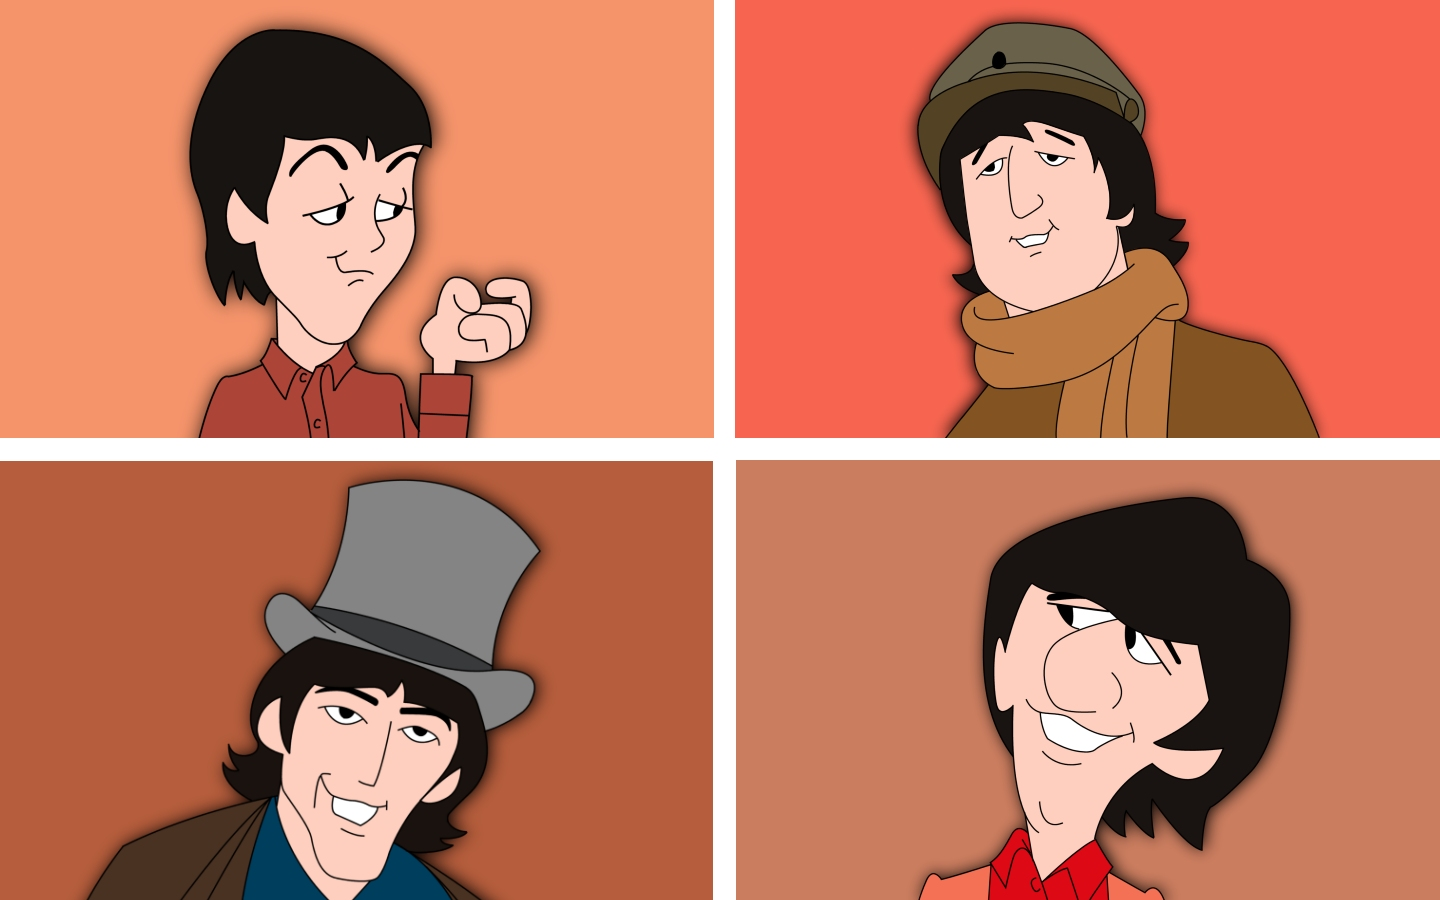 http://www.startrekanimated.com/ys_car_beatles_wall08.jpg